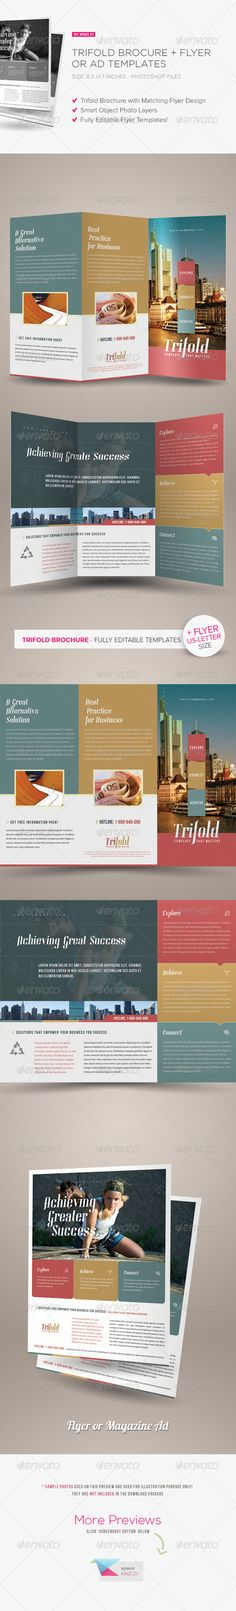 85 best print templates images on pinterest card templates